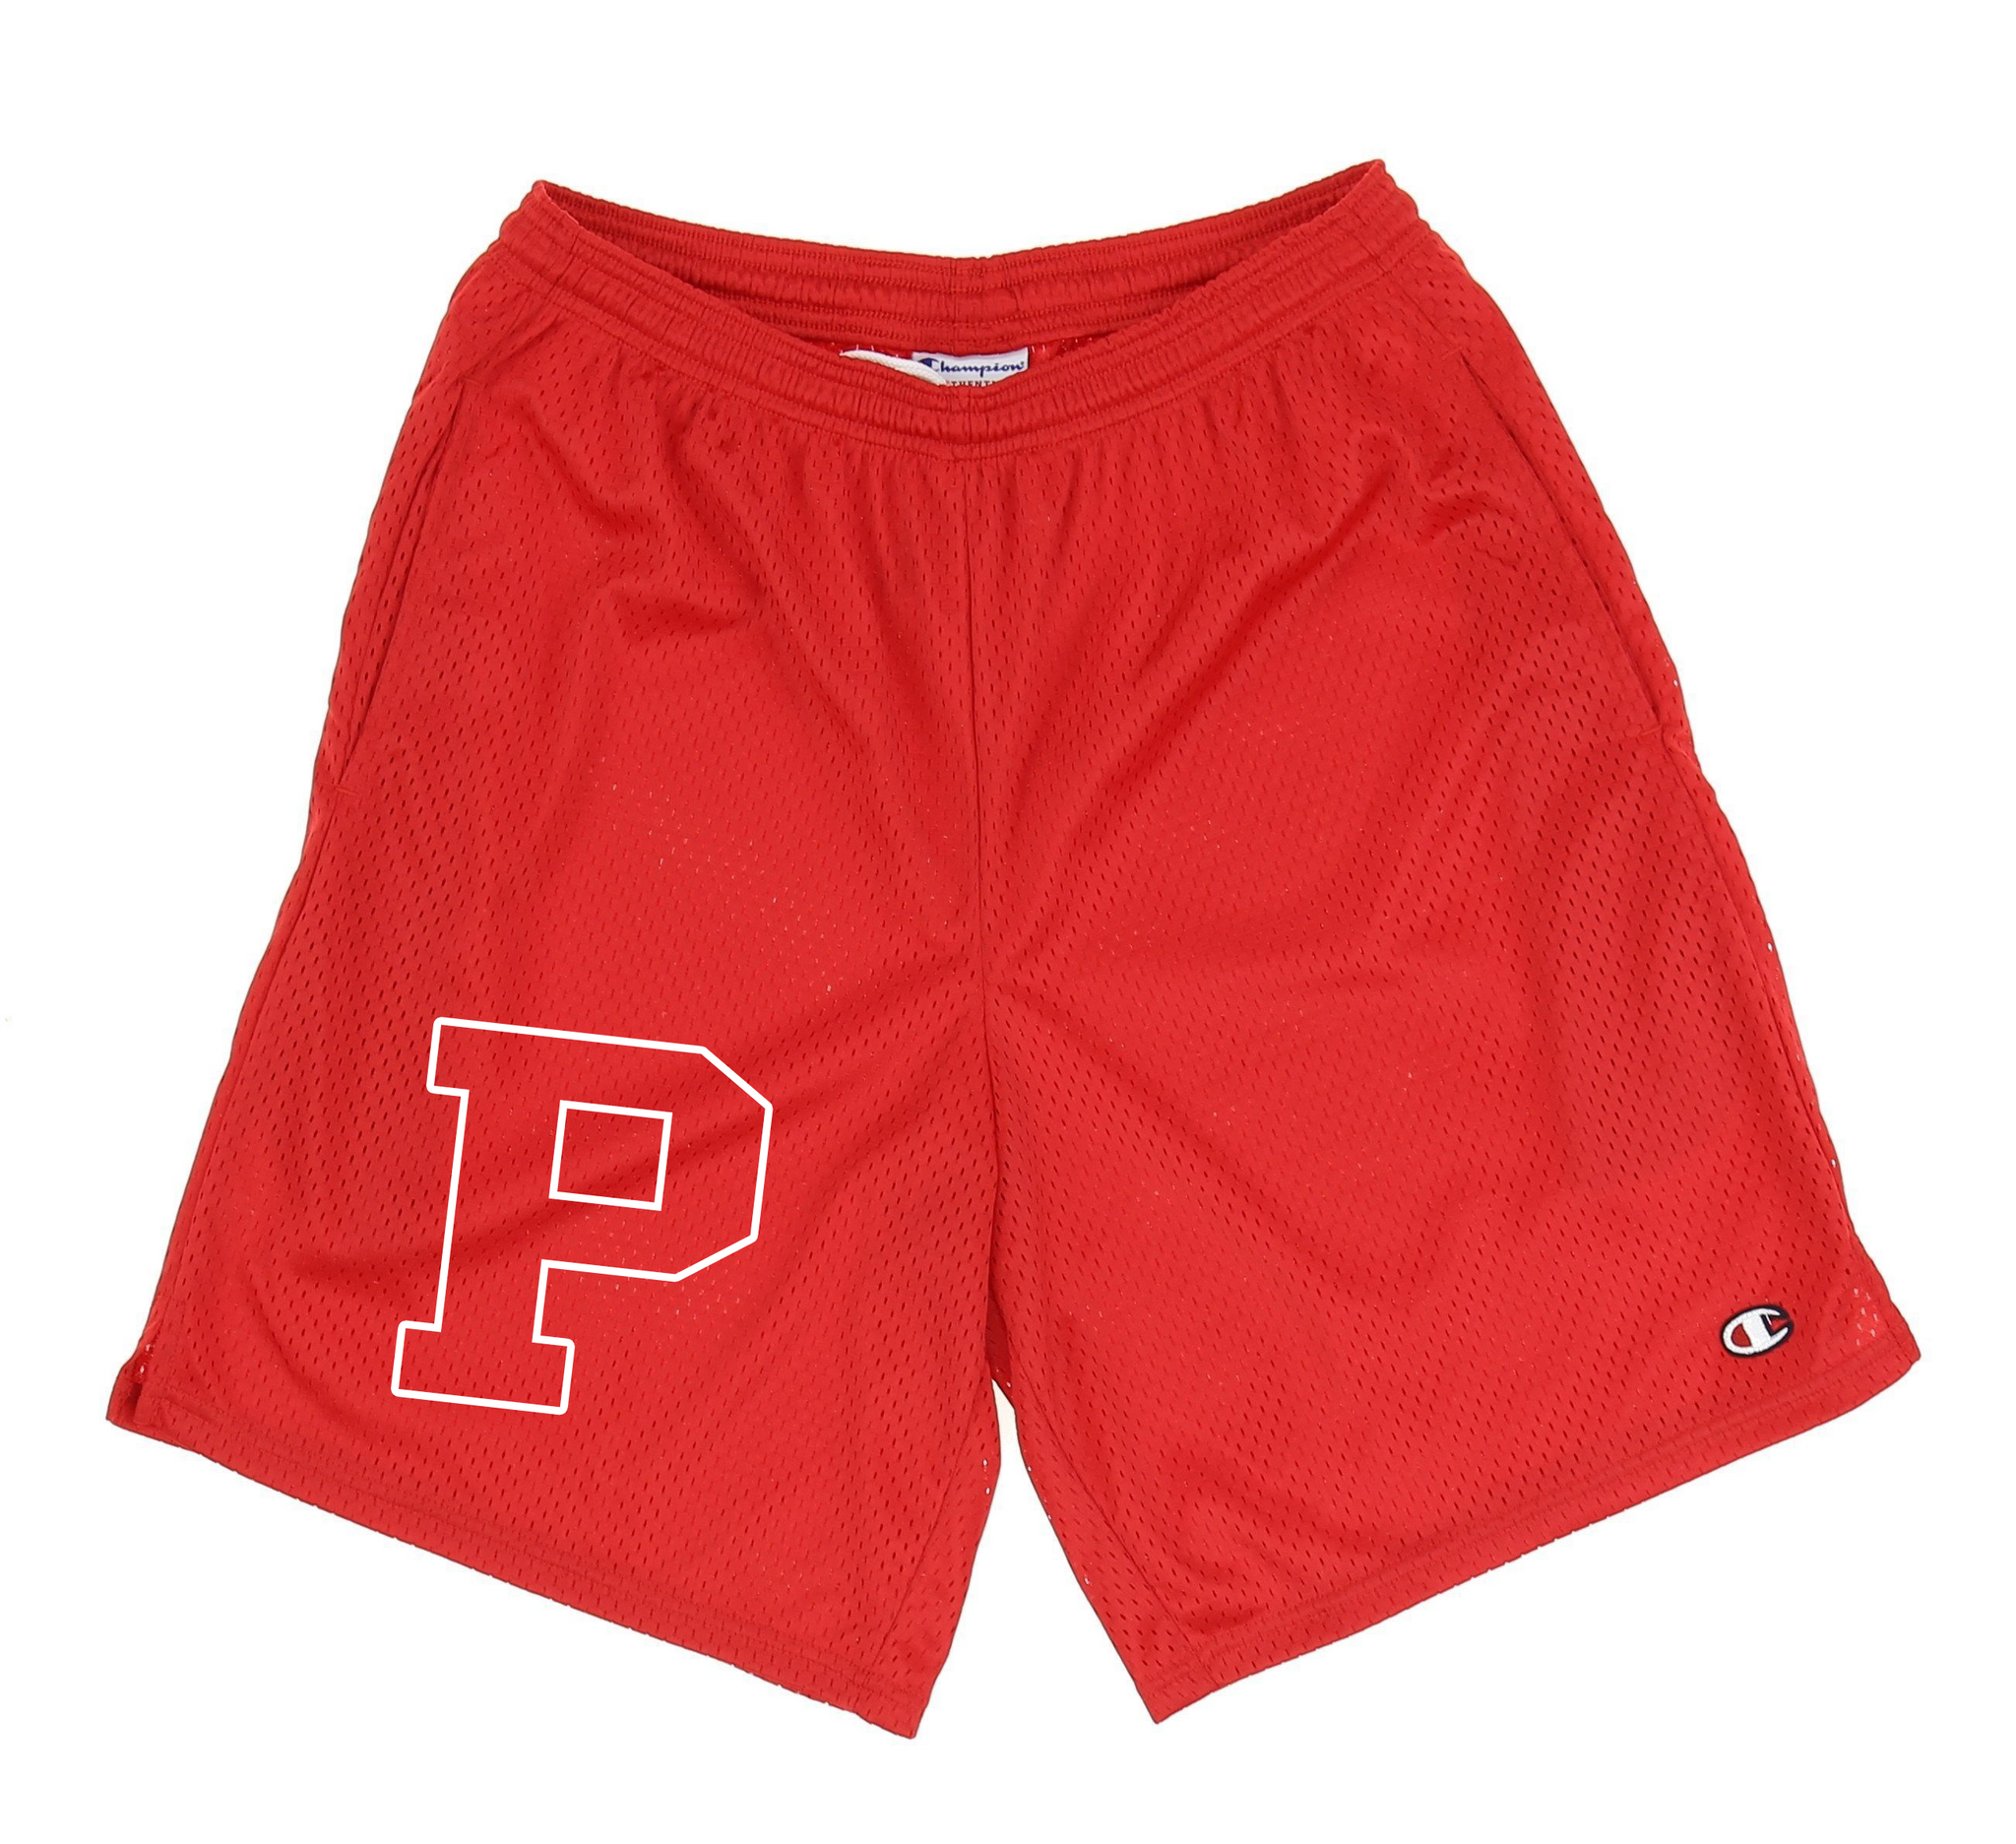 Prophecy x Champion Shorts